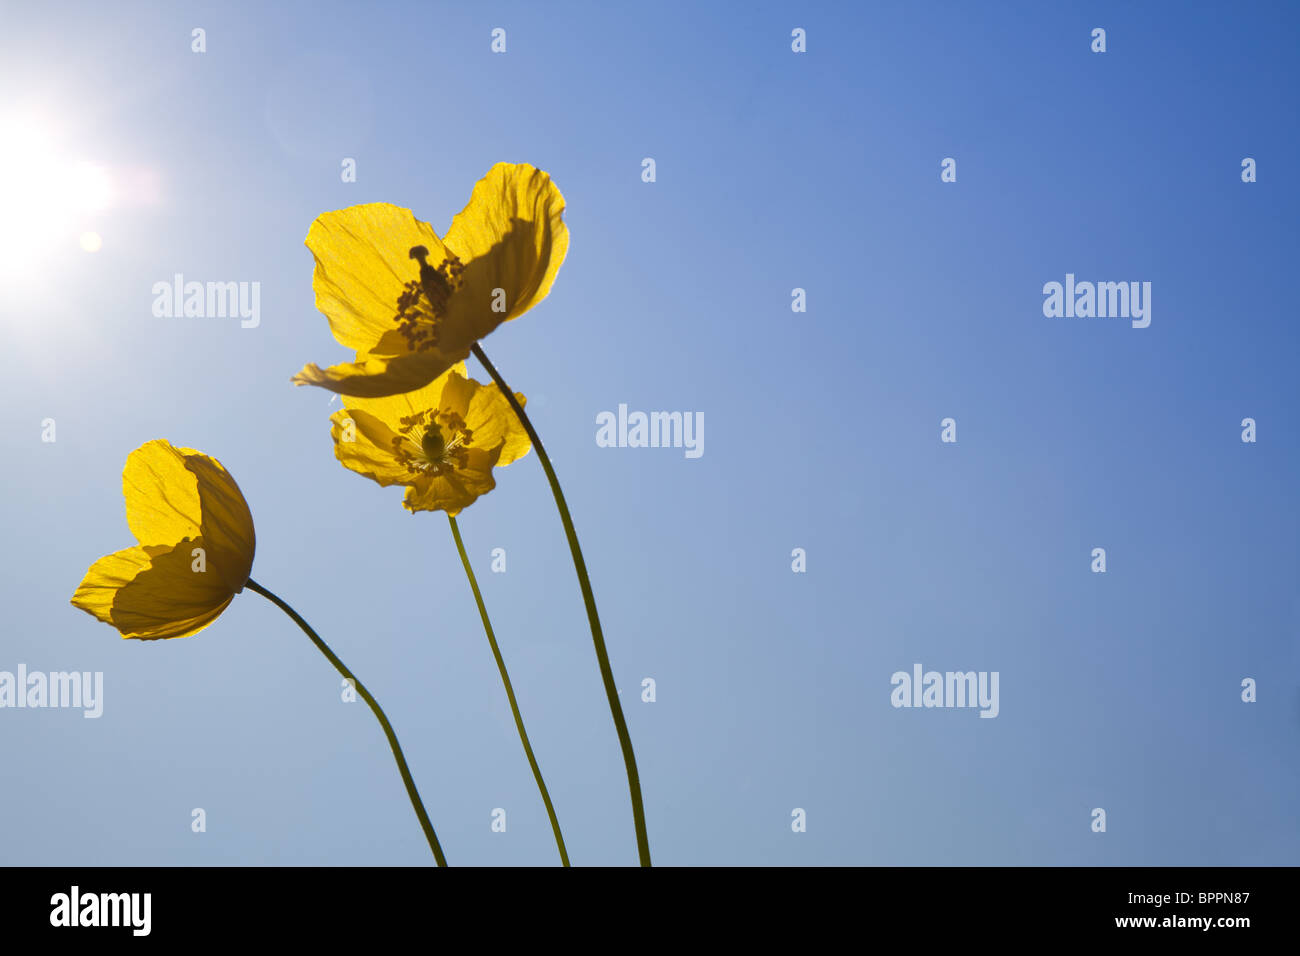 Wild poppies leaning towards the sun in a clear blue sky Stock Photo